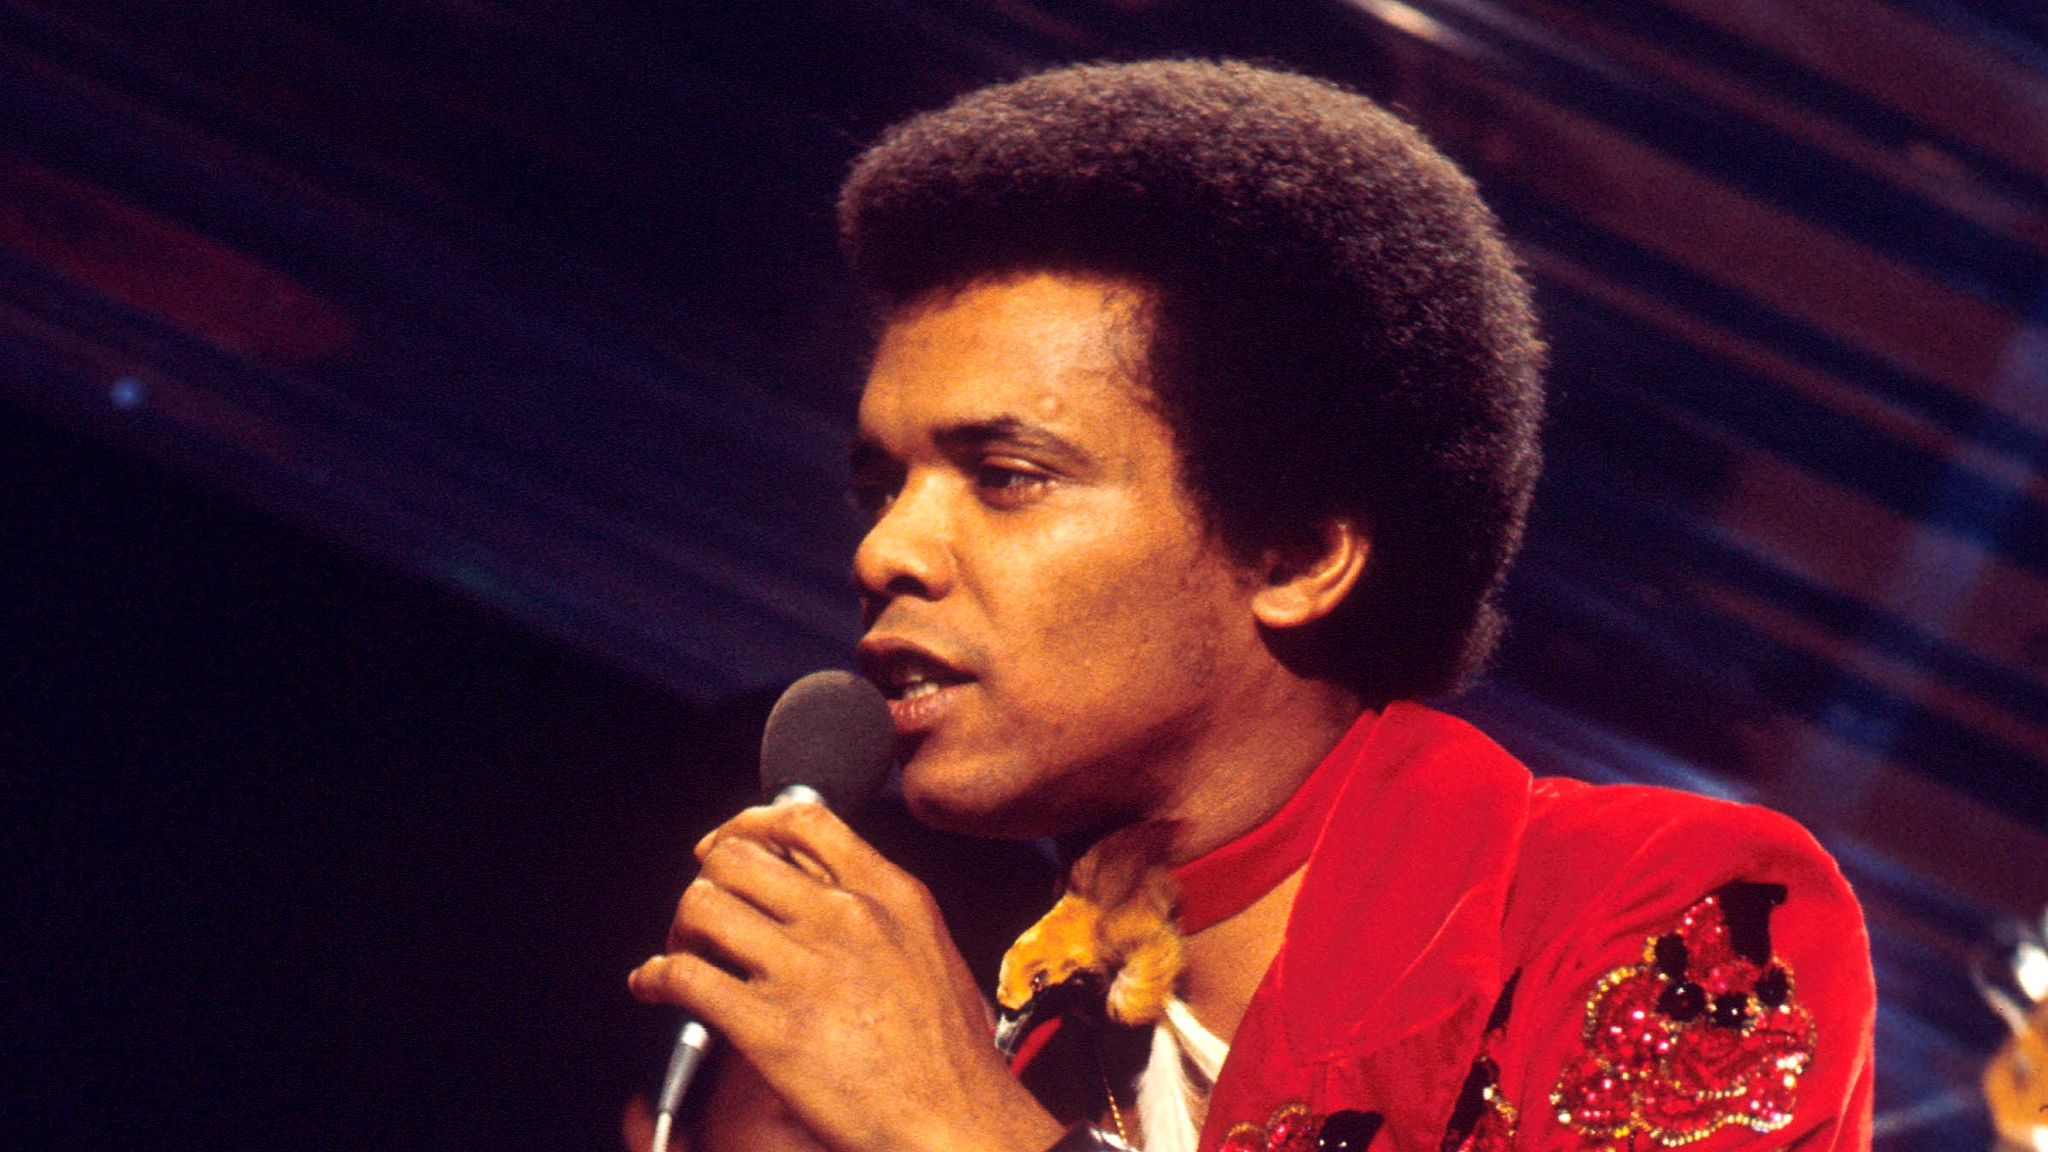 Singer Johnny Nash Passes Away At 80 Years Old